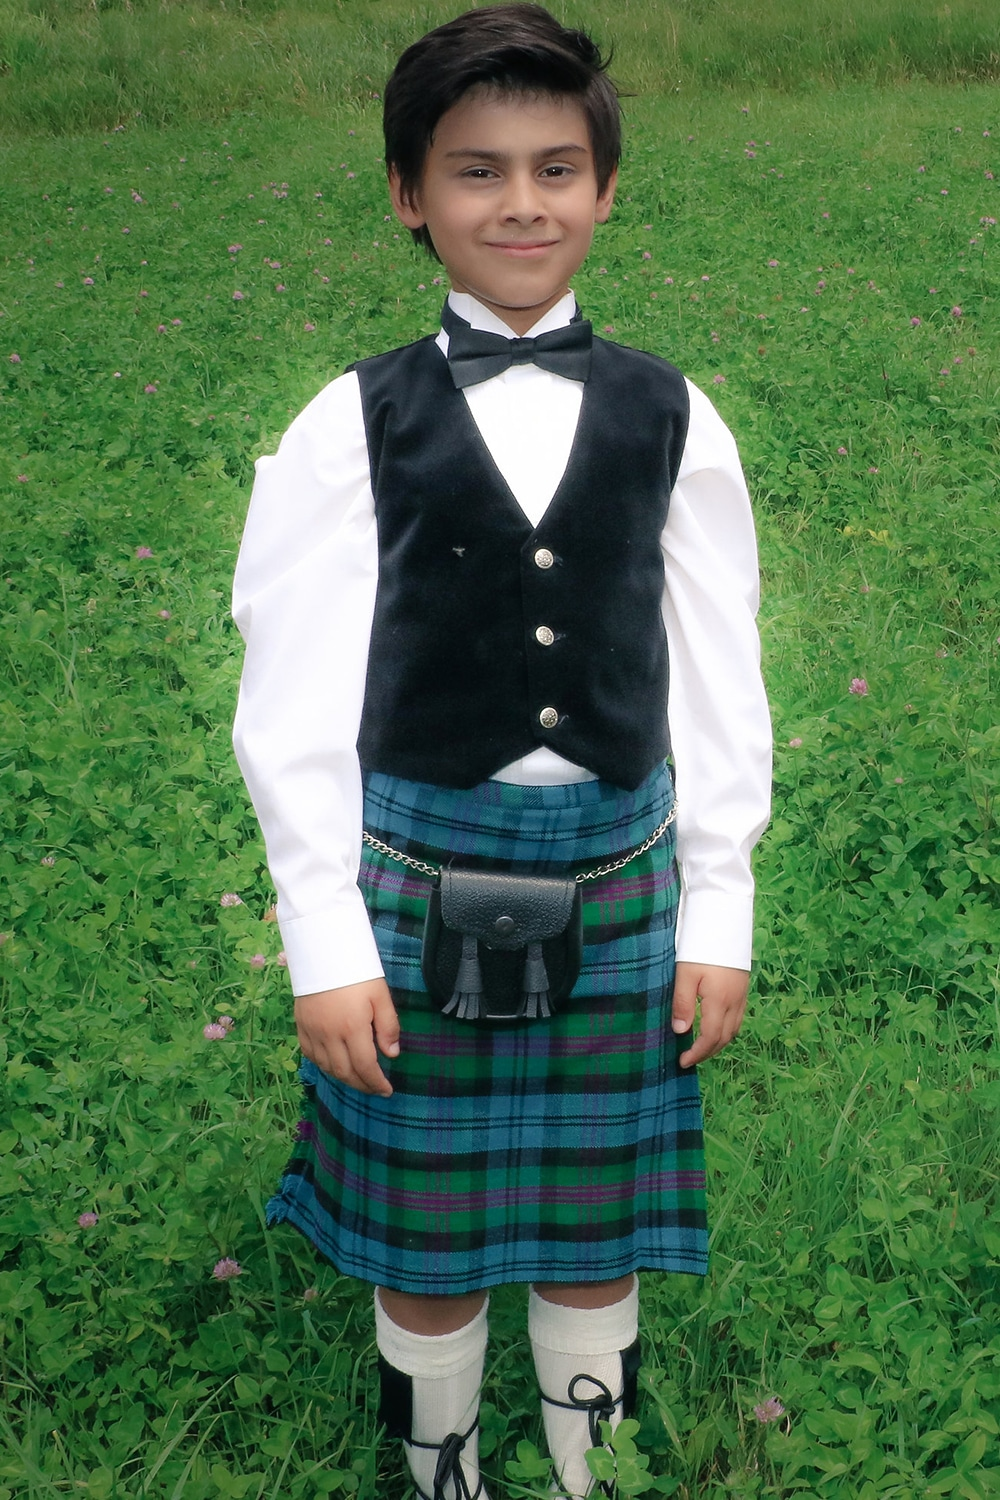 Young Boy in our Good Basic Kilt for Kids